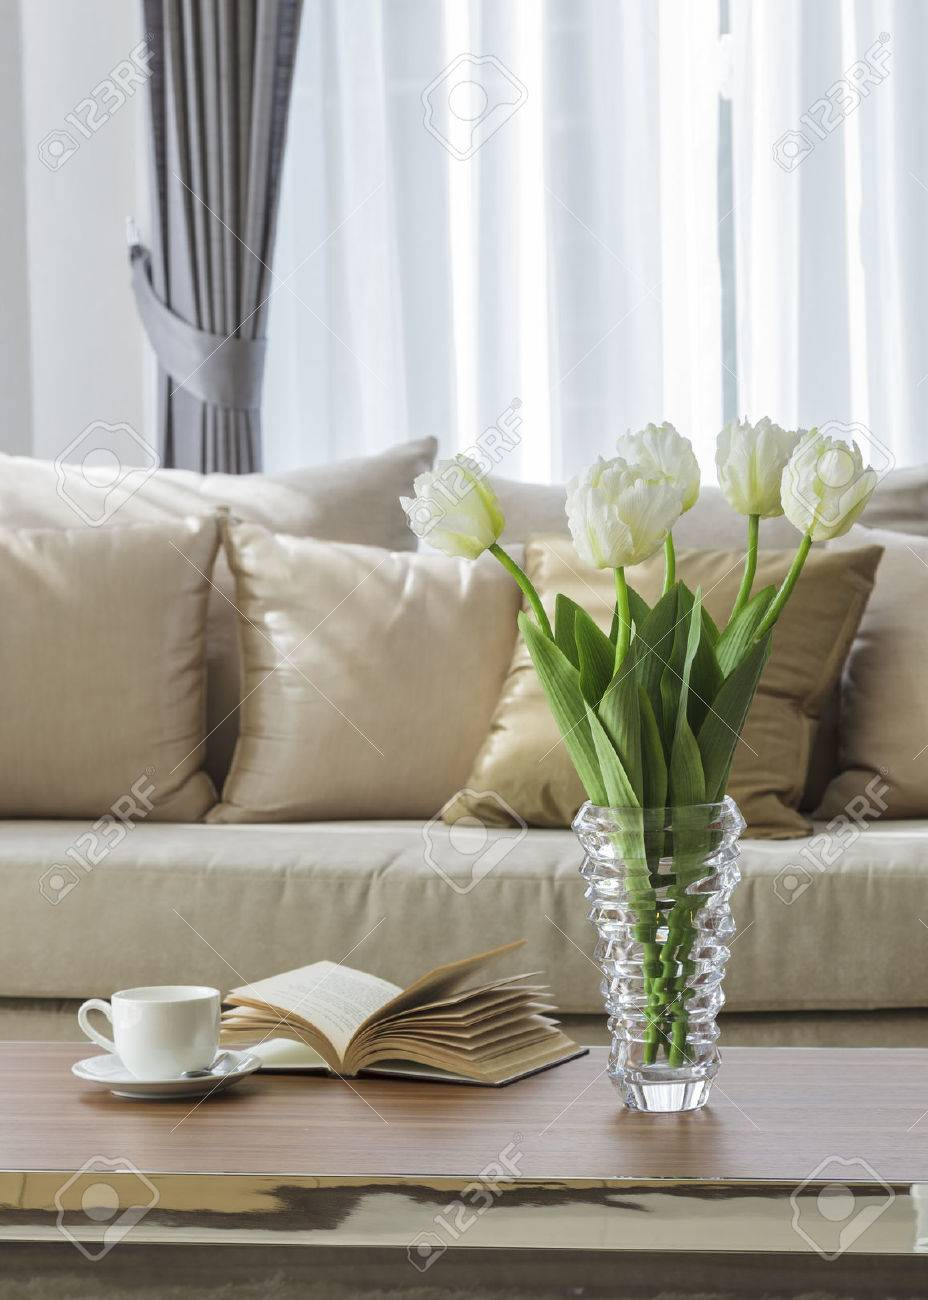 living room sofa with flower coffee and book on table stock photo living room sofa with flower coffee and book on table stock photo 35284709